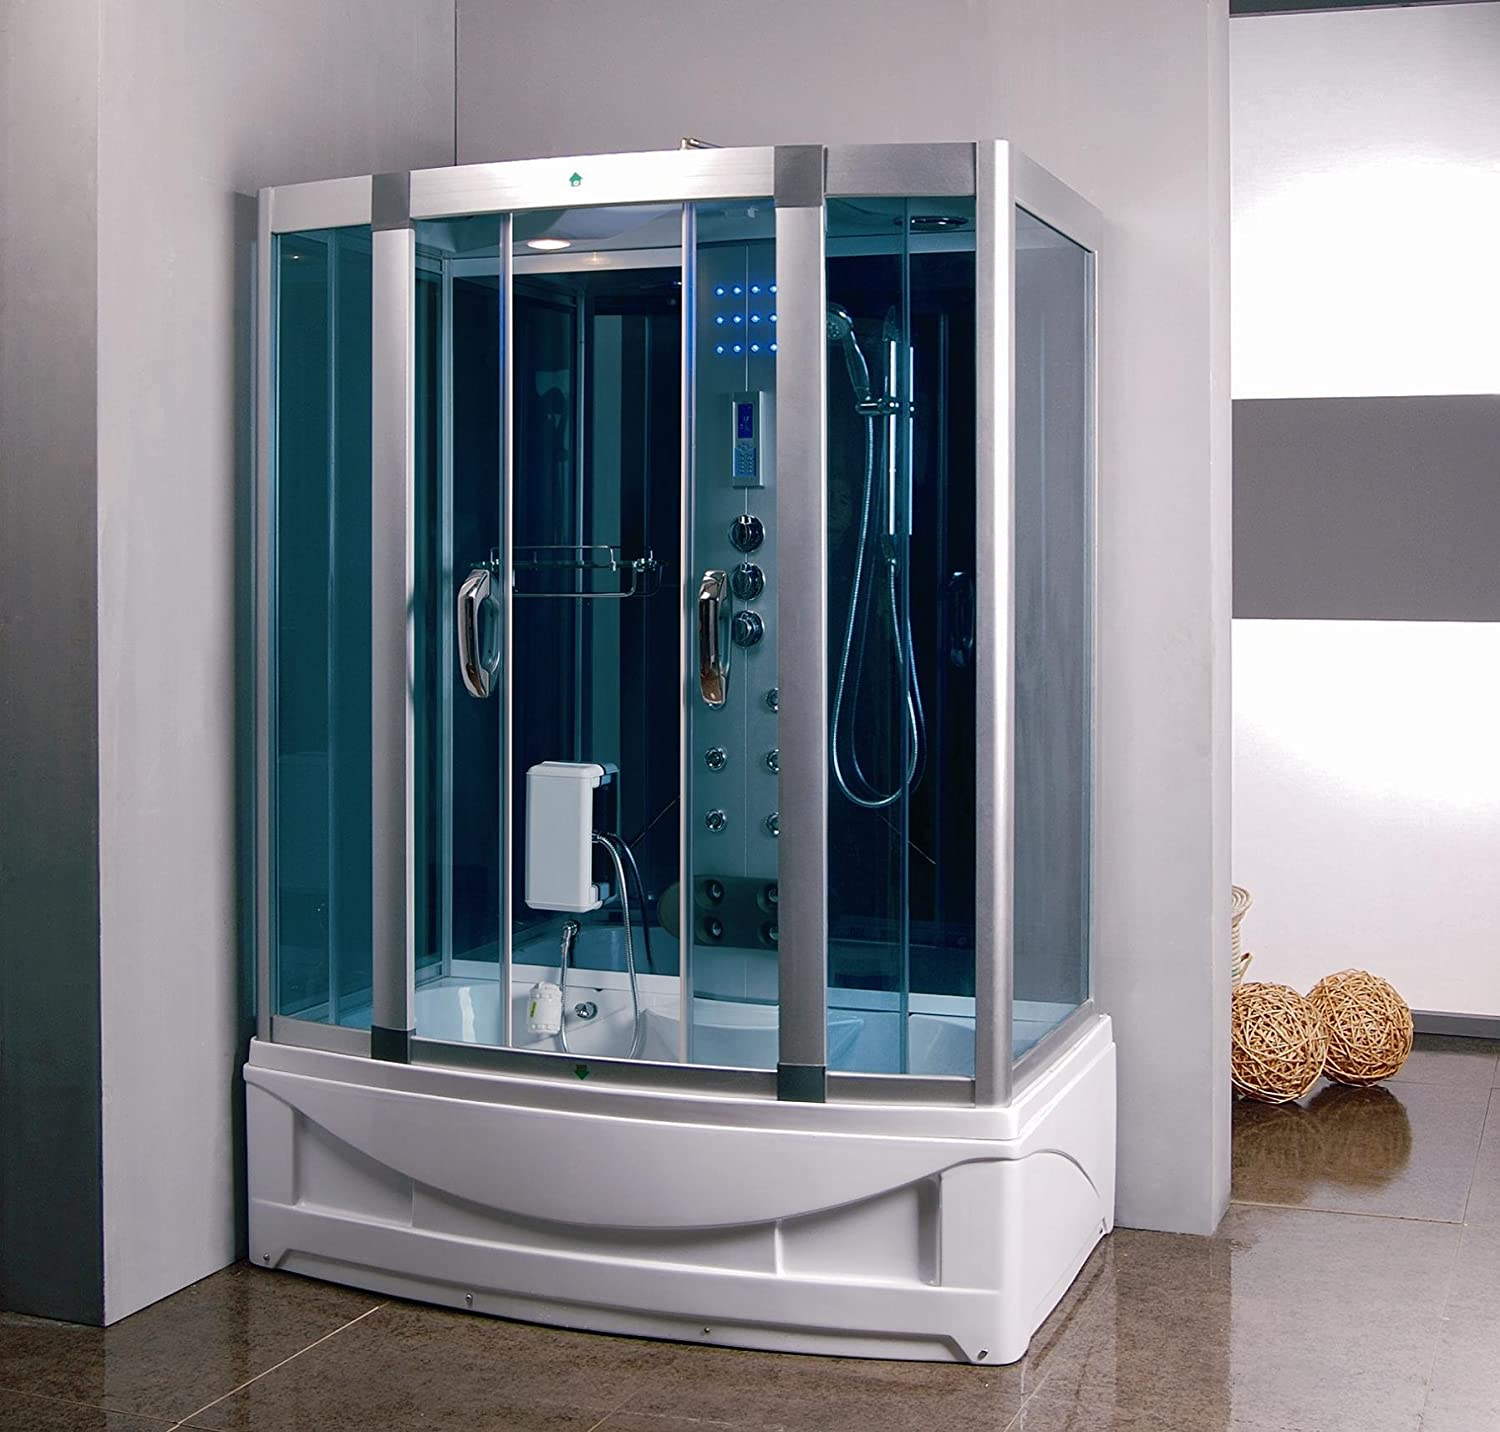 Kokss 9001 Home Luxury Bathtub Spa, Steam Shower Sauna Enclosure ...